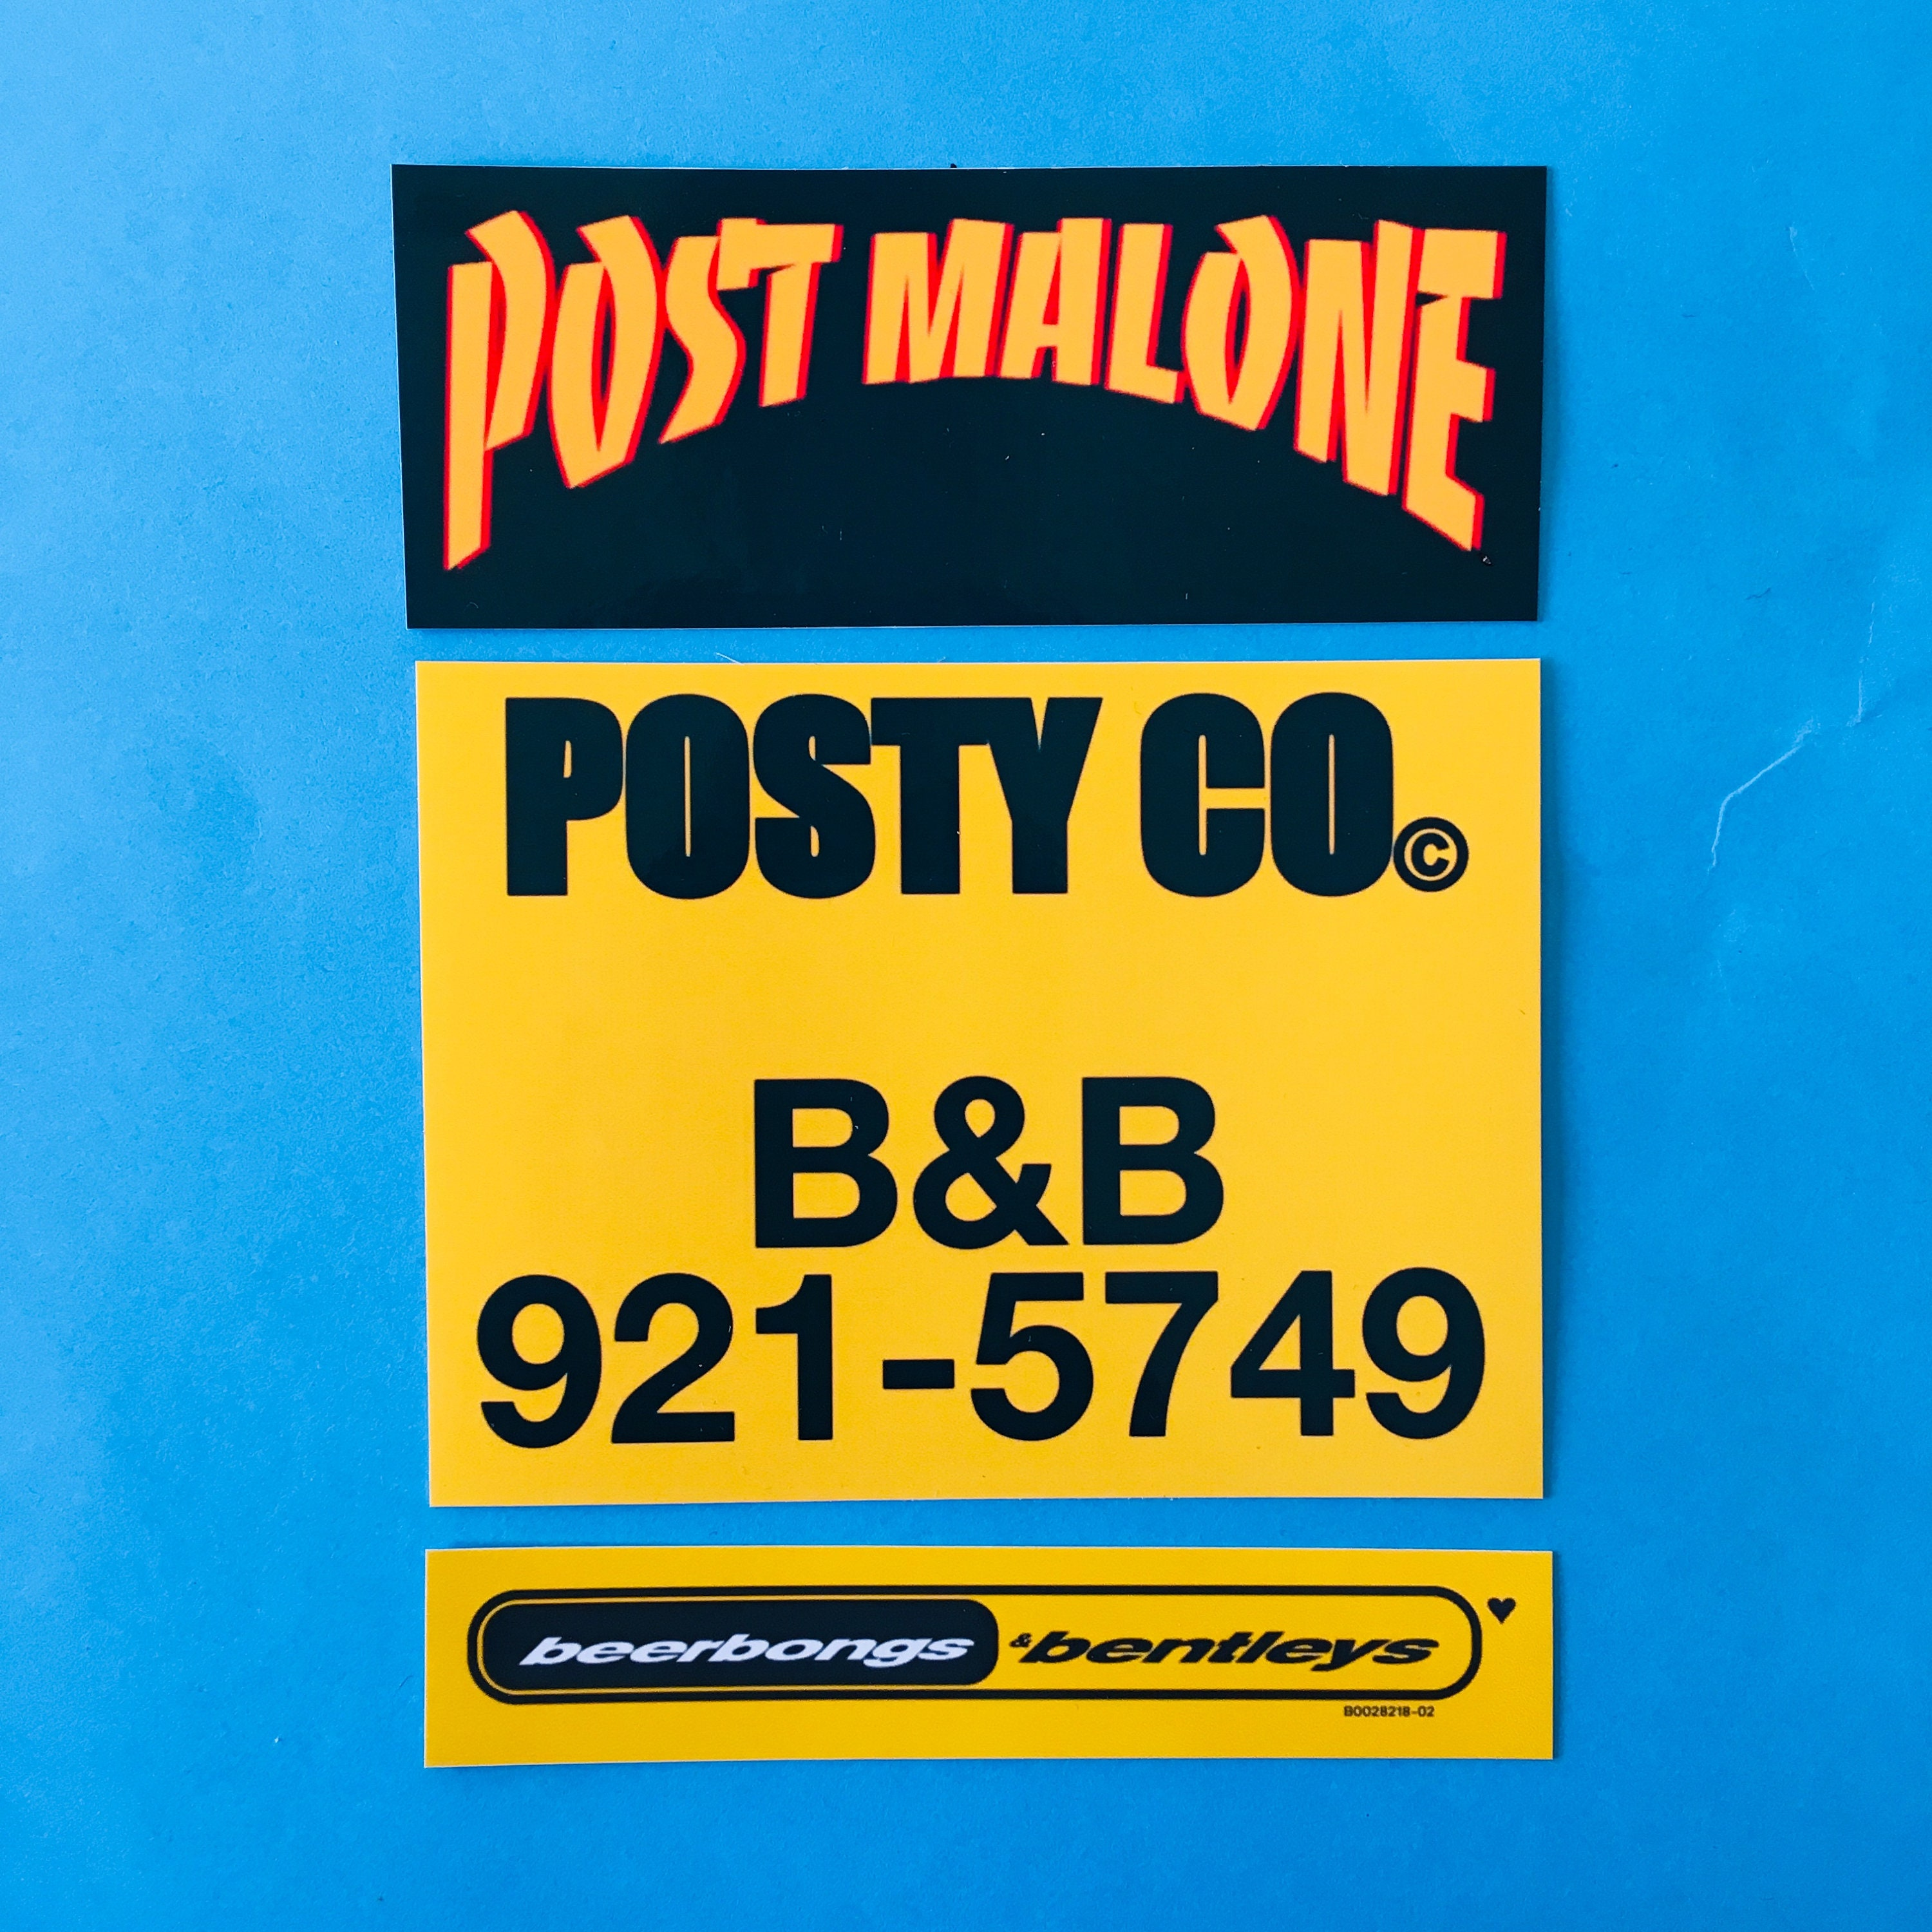 Post Malone Sticker Pack (3 Stickers) beerbongs & bentleys, thrasher logo,  posty and co